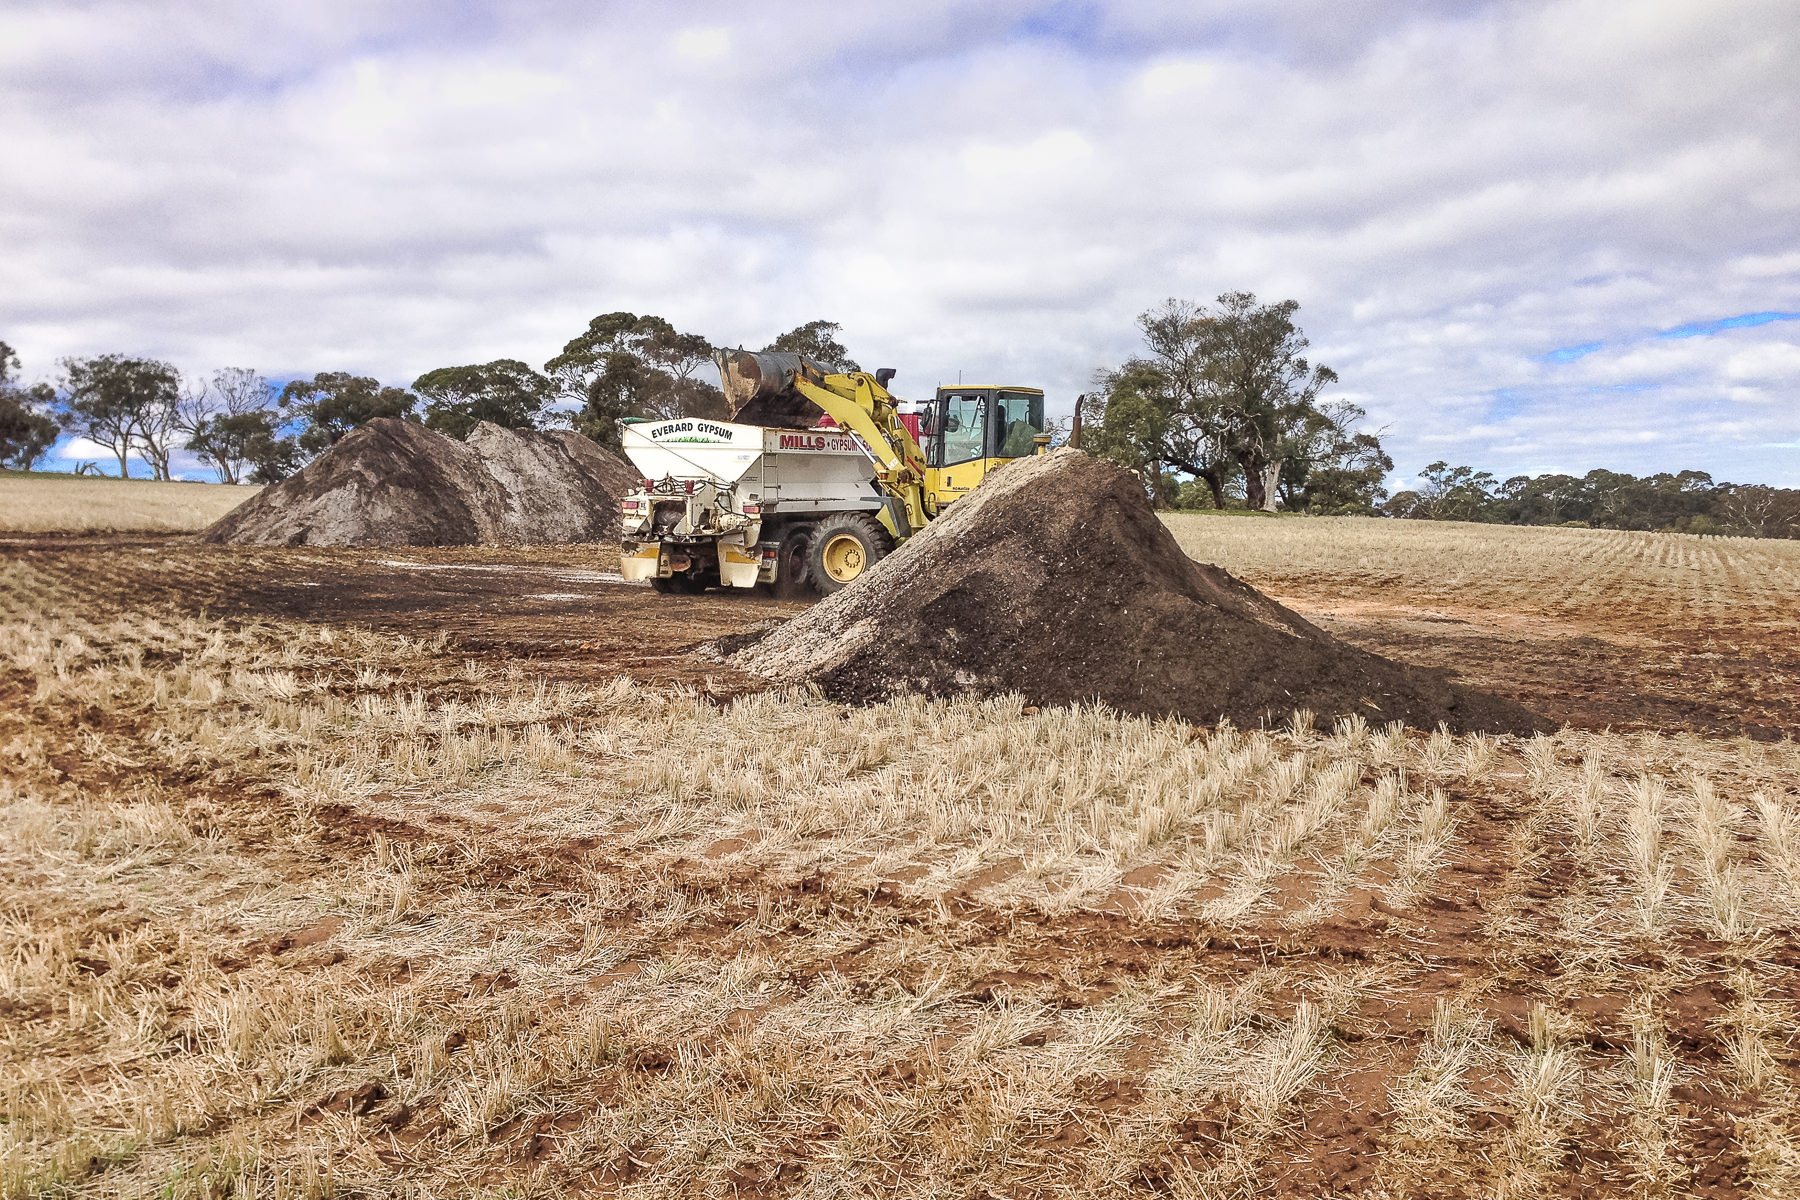 Preparation and mixing of soil treatment